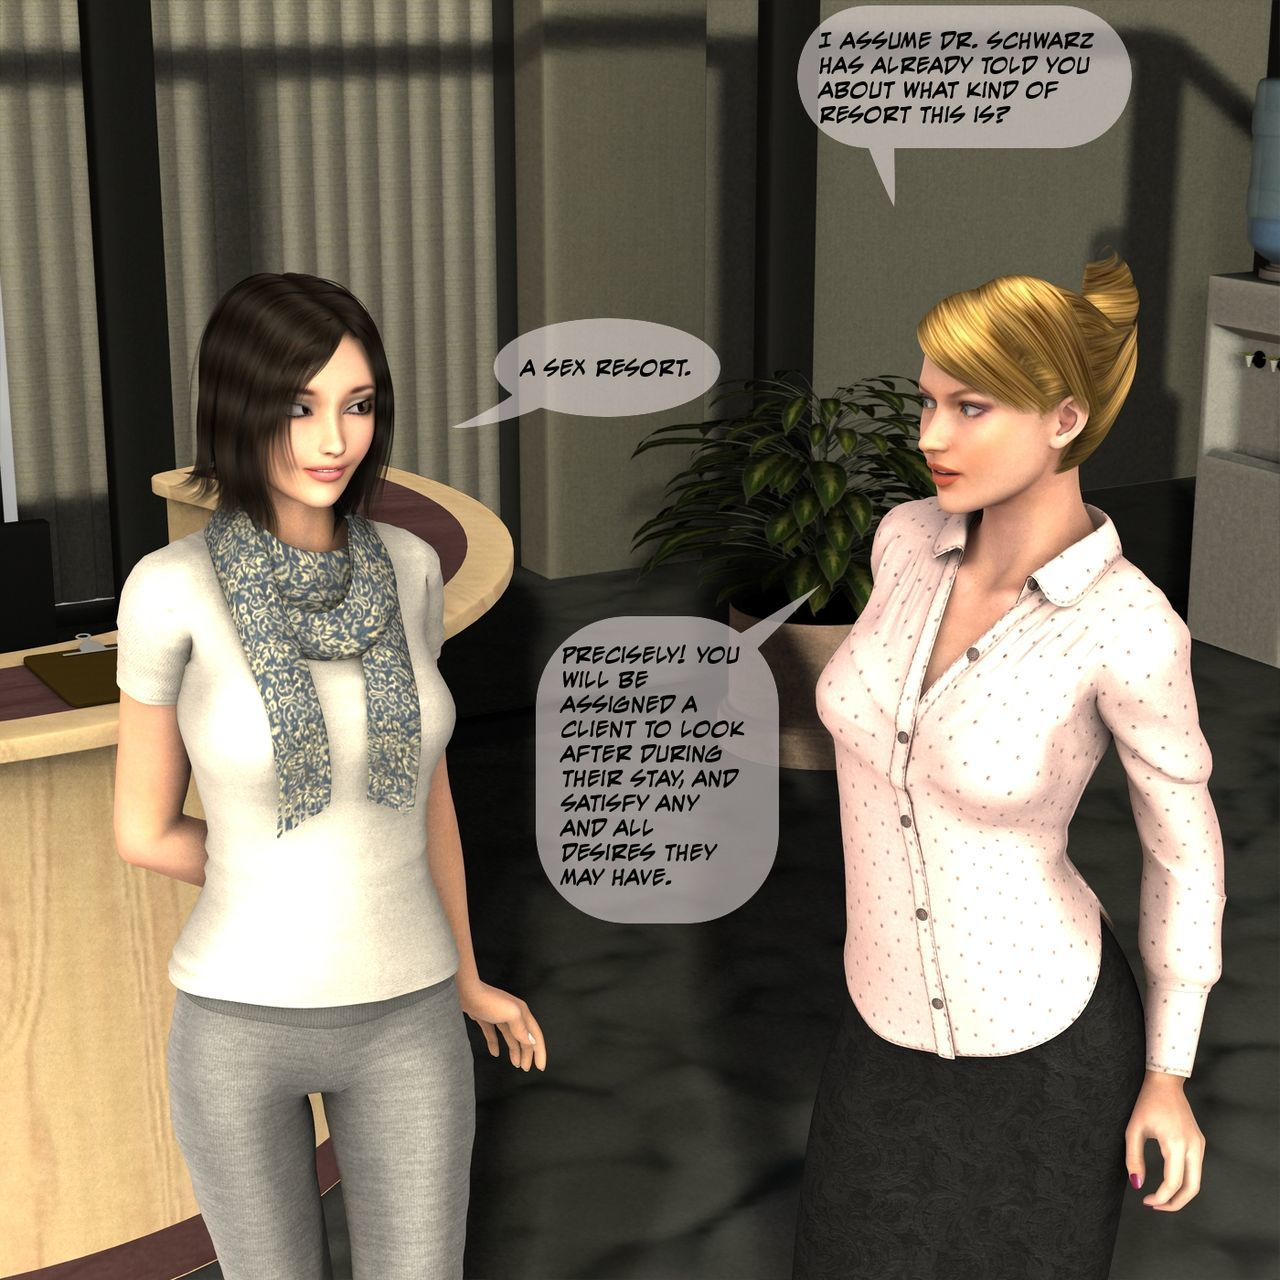 [Fasdeviant] Ashbury Private Health Resort - Chapter 1 - part 2